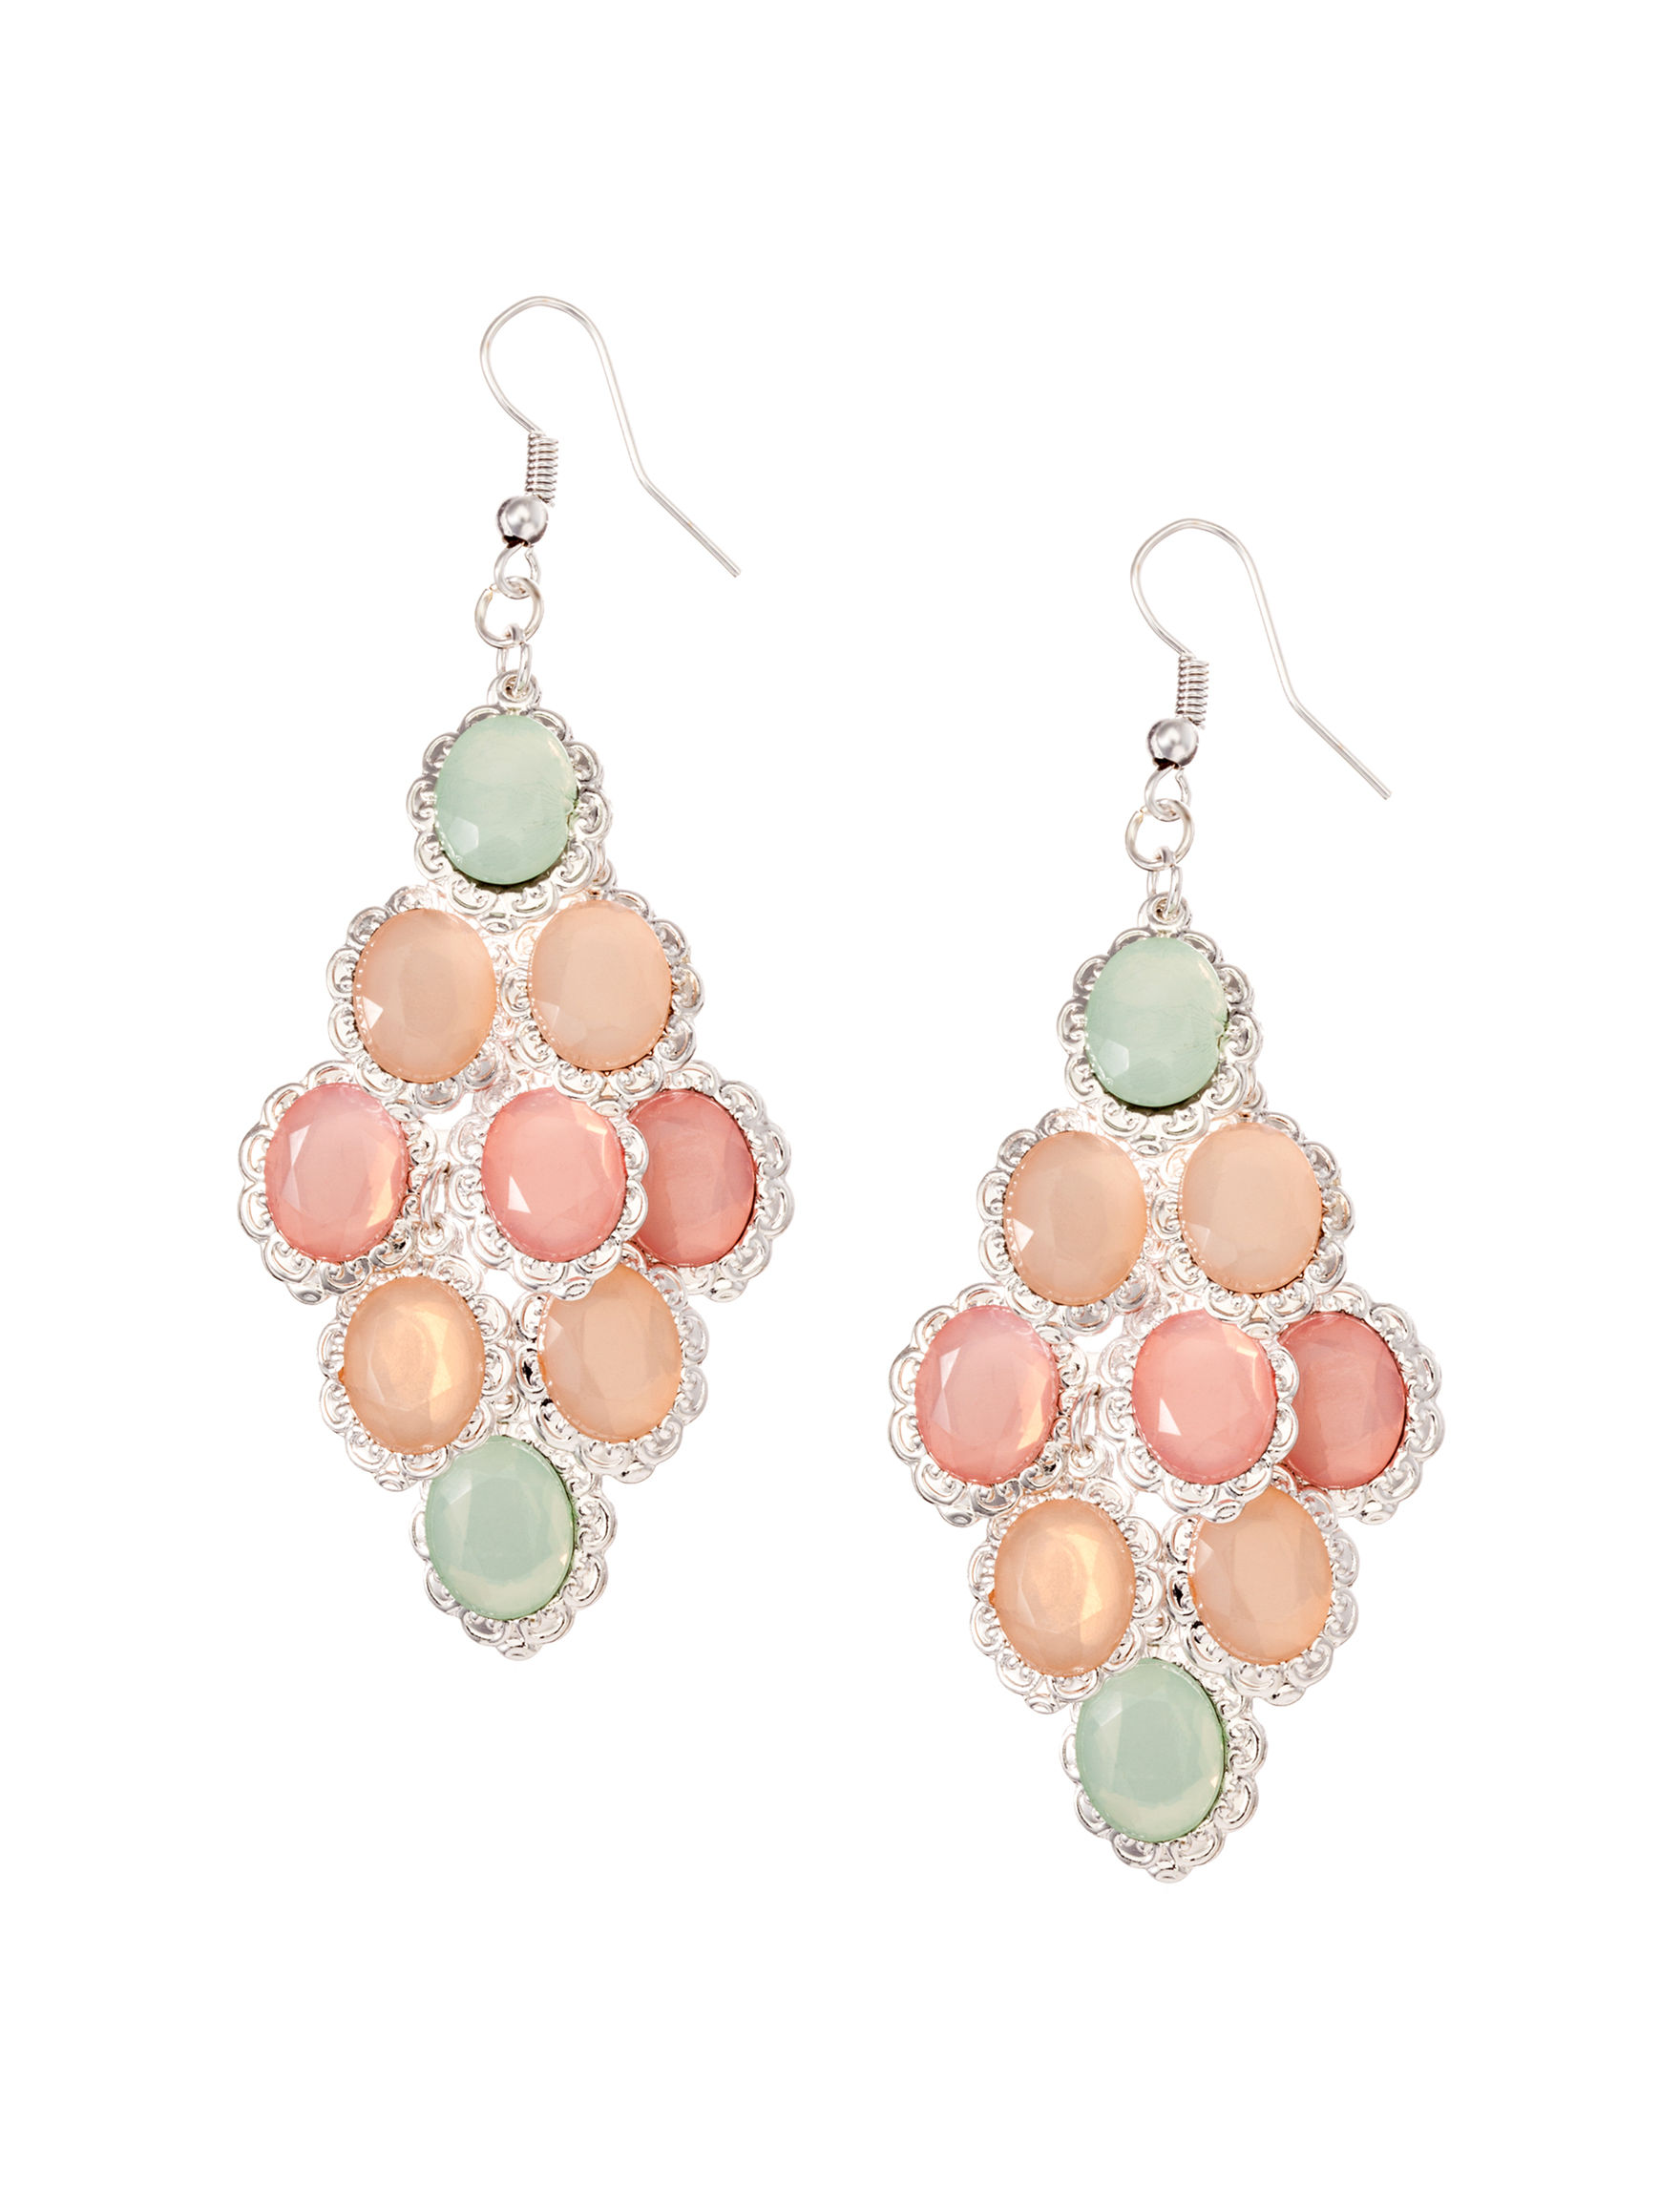 Hannah Peach Drops Earrings Fashion Jewelry